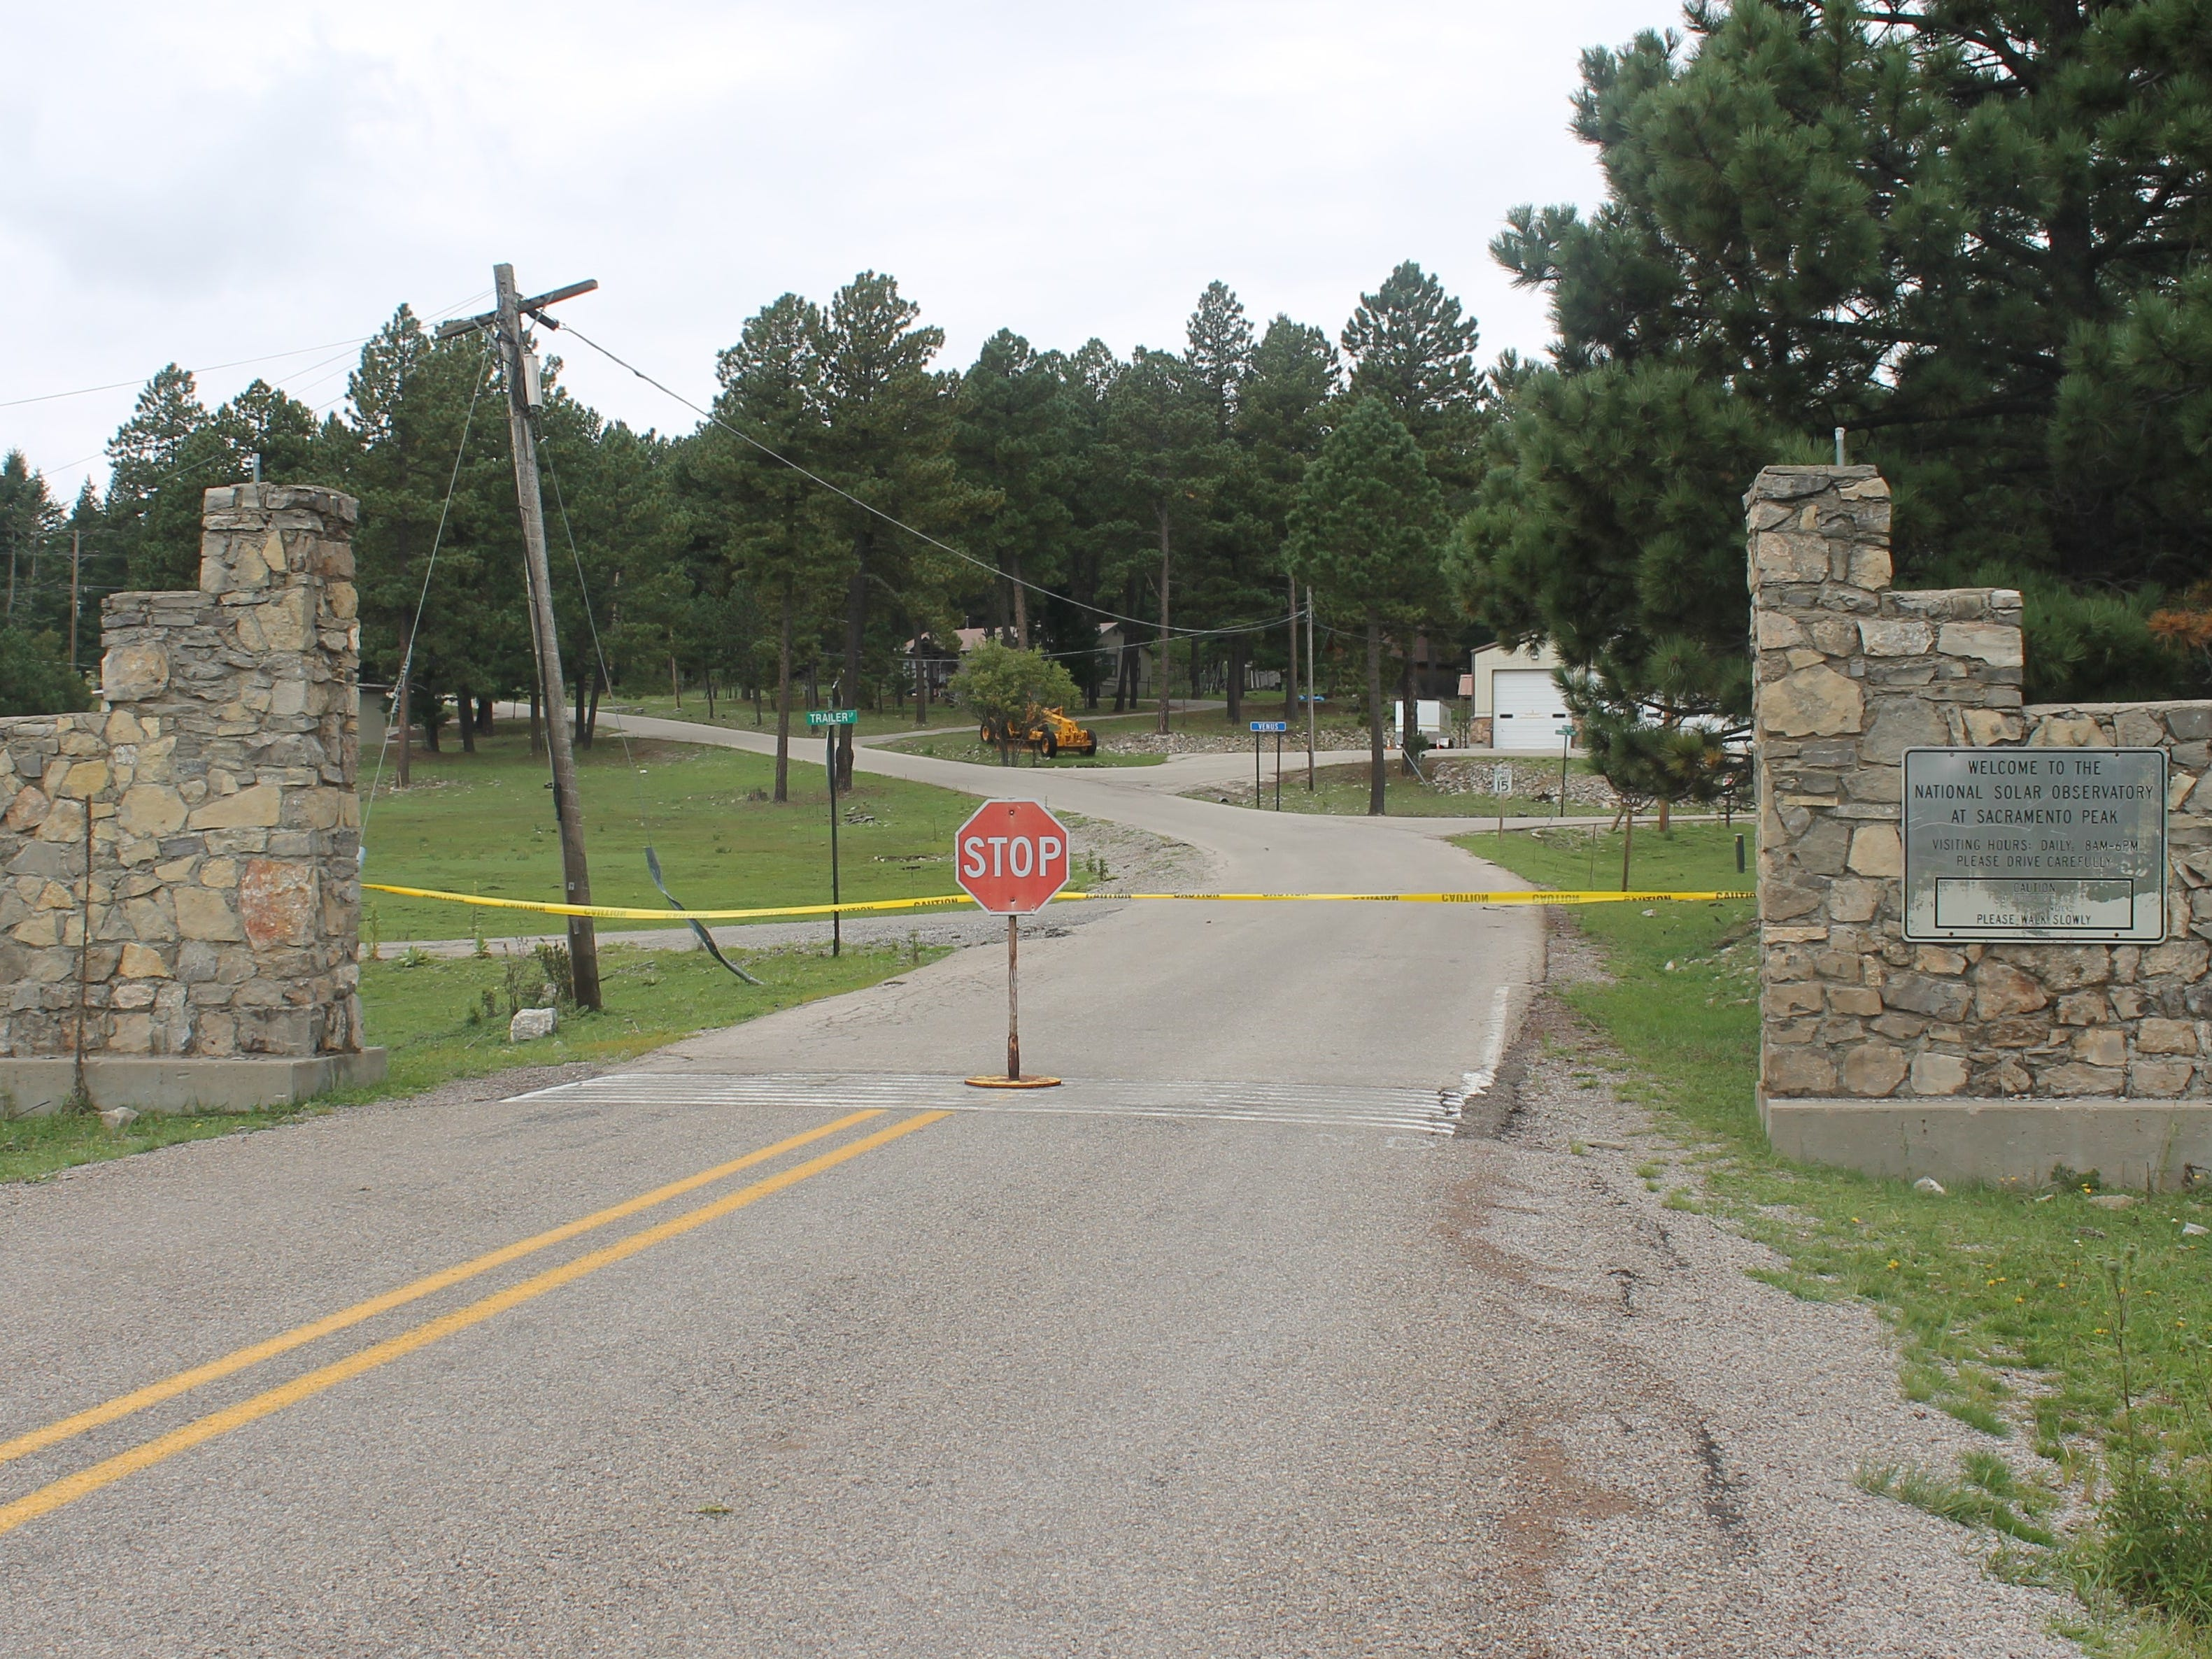 A stop sign and yellow crime scene tap at the entrance to Sunspot Observatory's entrance Friday morning. The facility was closed due to a security issue.